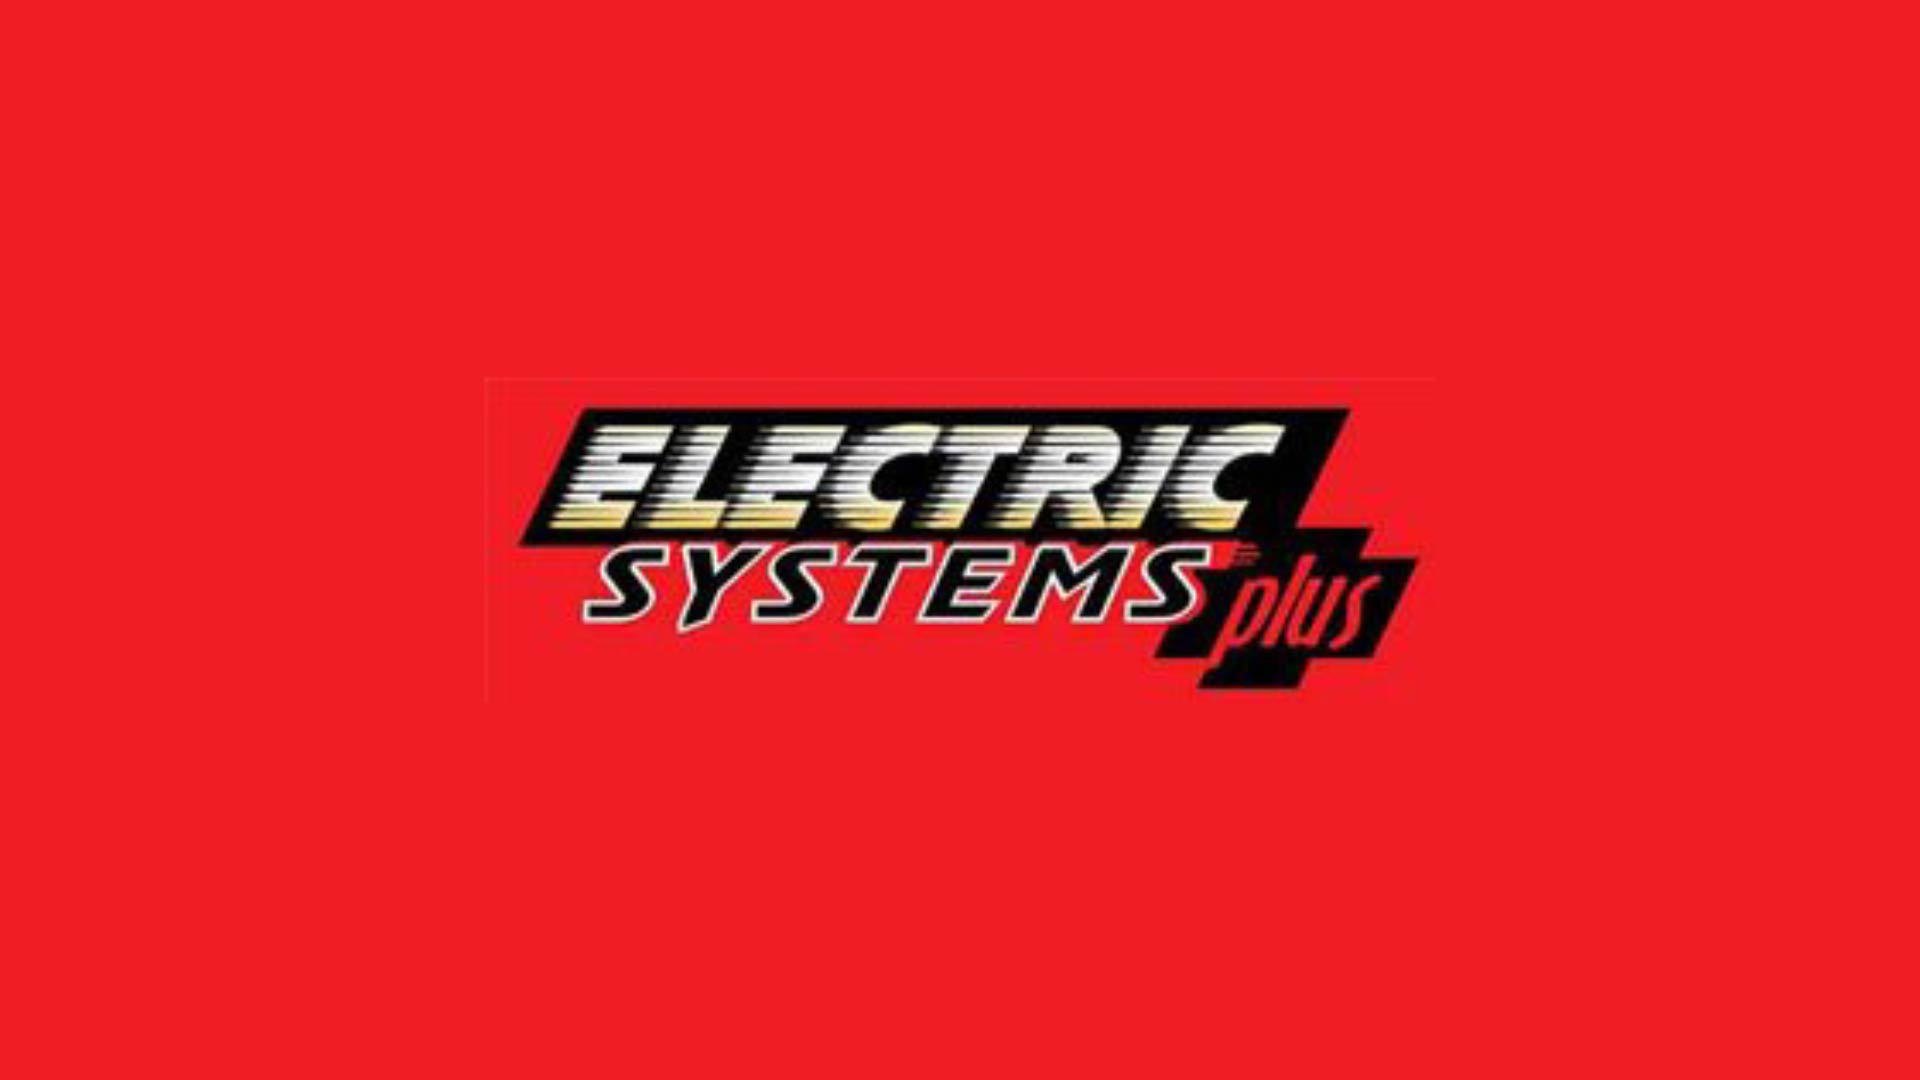 Electric Systems of Anoka Inc. dba Electric Systems Plus